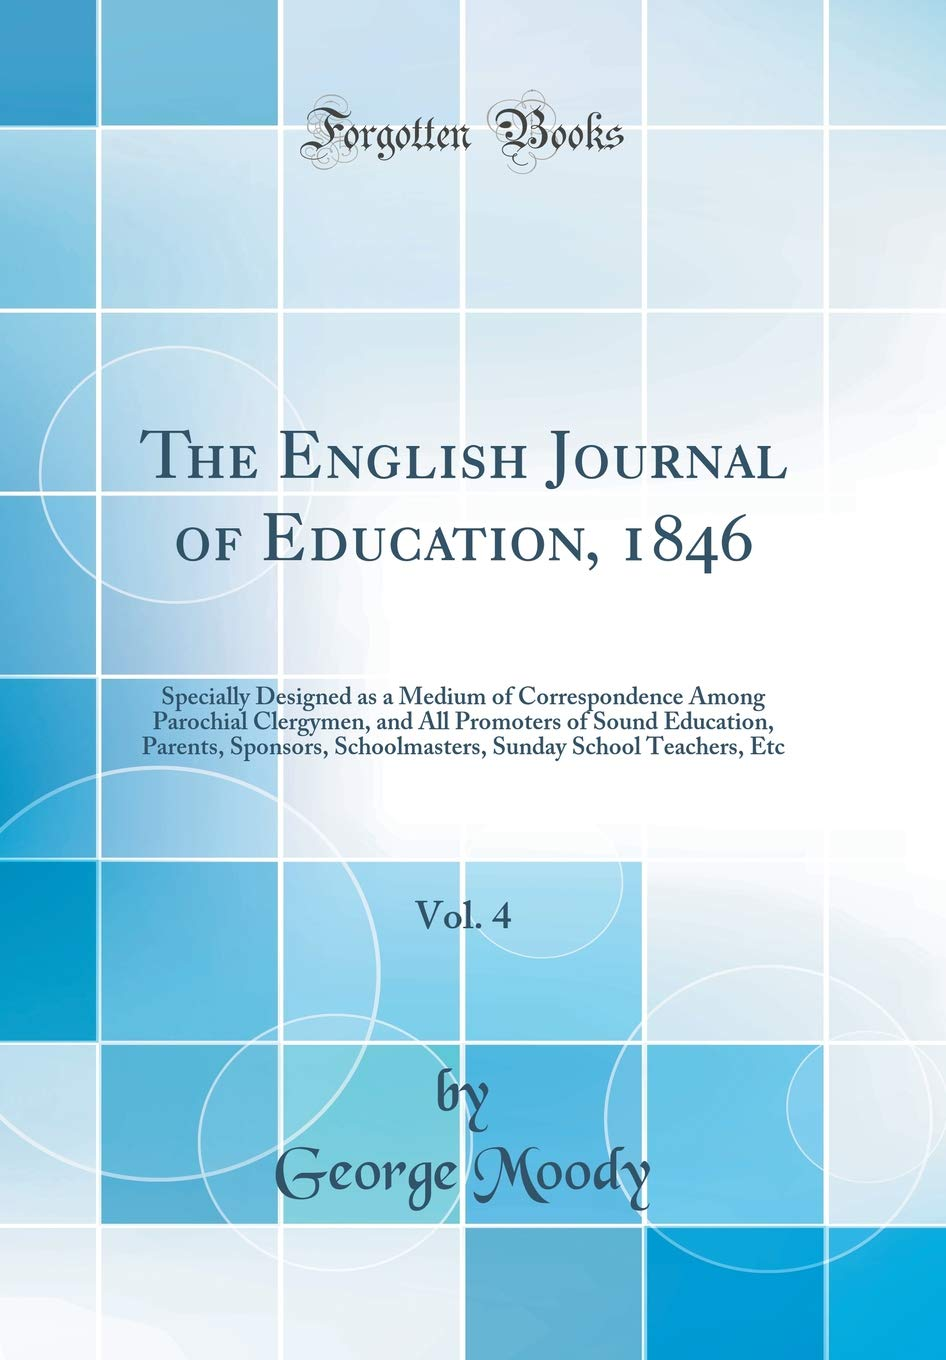 The English Journal of Education, 1846, Vol. 4: Specially Designed as a Medium of Correspondence Among Parochial Clergymen, and All Promoters of Sound ... Sunday School Teachers, Etc (Classic Reprint) pdf epub